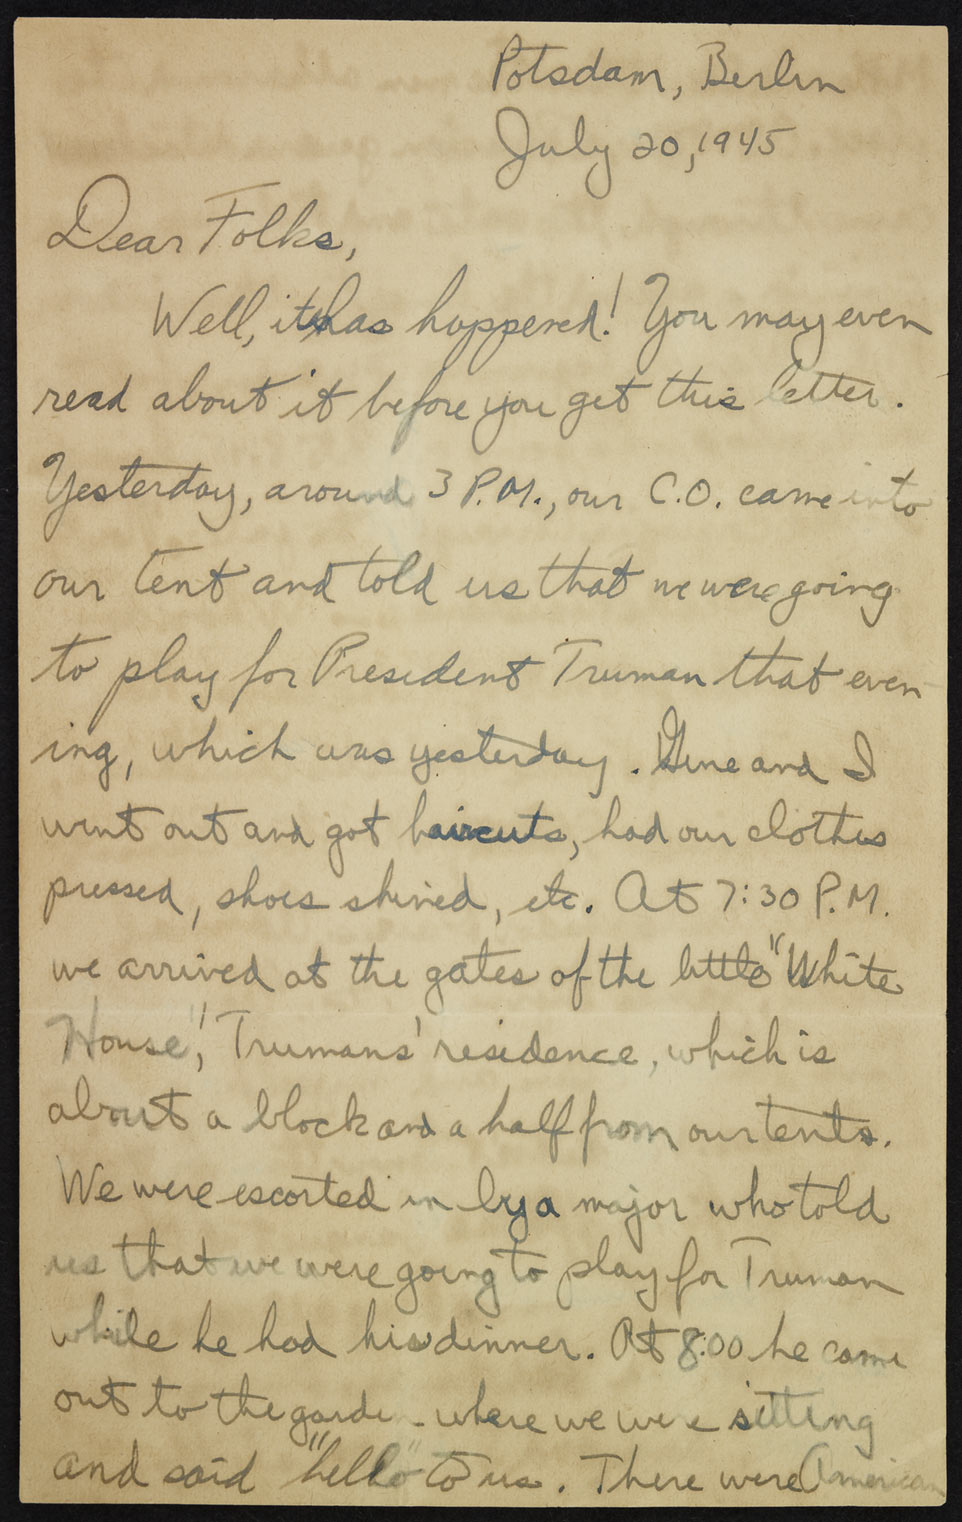 Letter from Potsdam, July 20, 1945